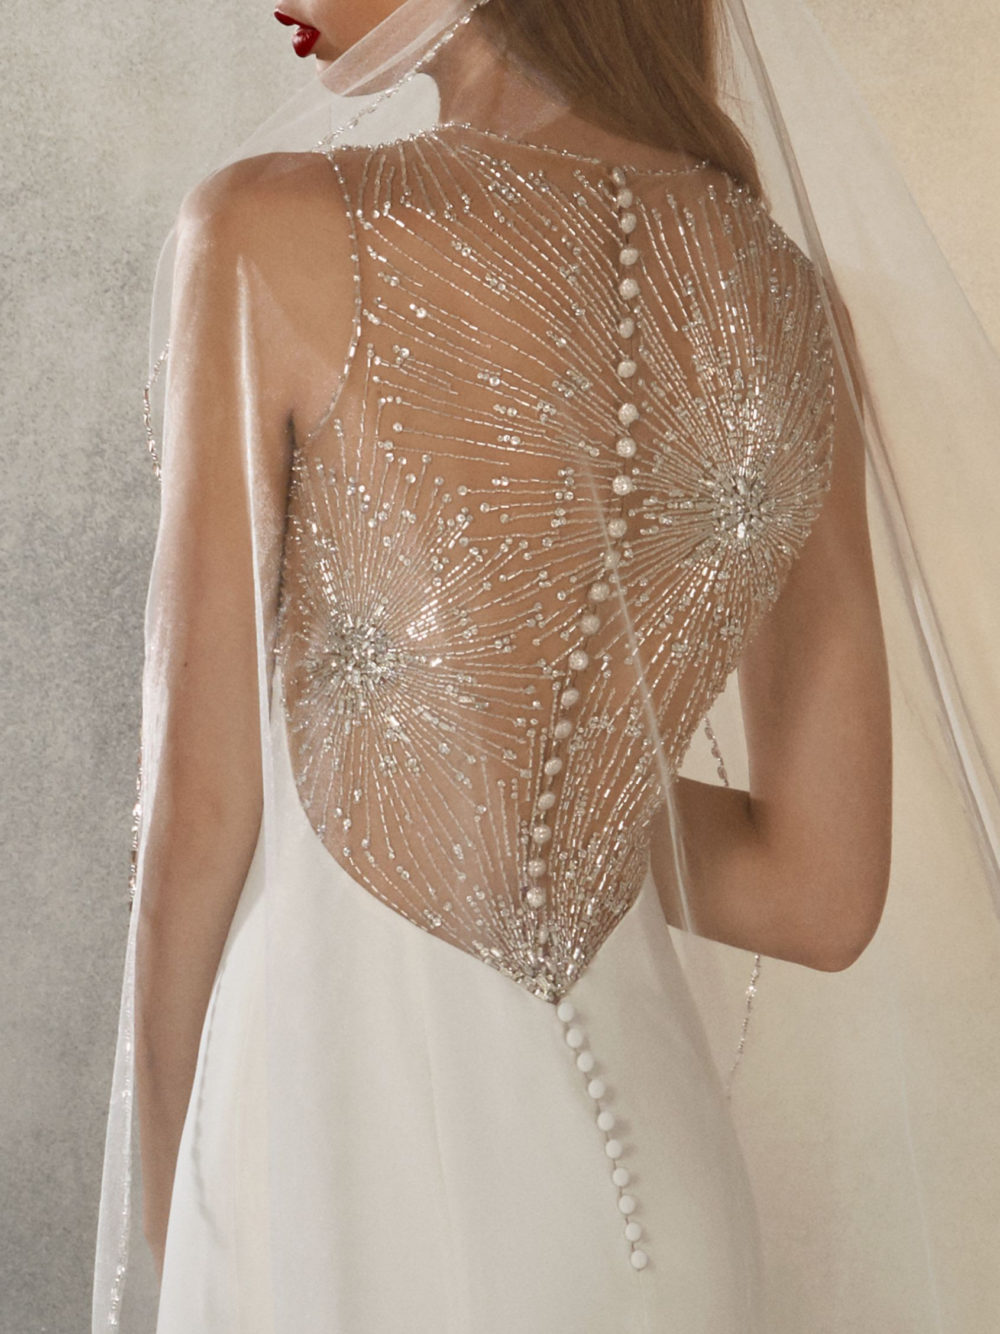 Pronovias Atelier Collection Galaxy Wedding Gown Dress 2020 Back